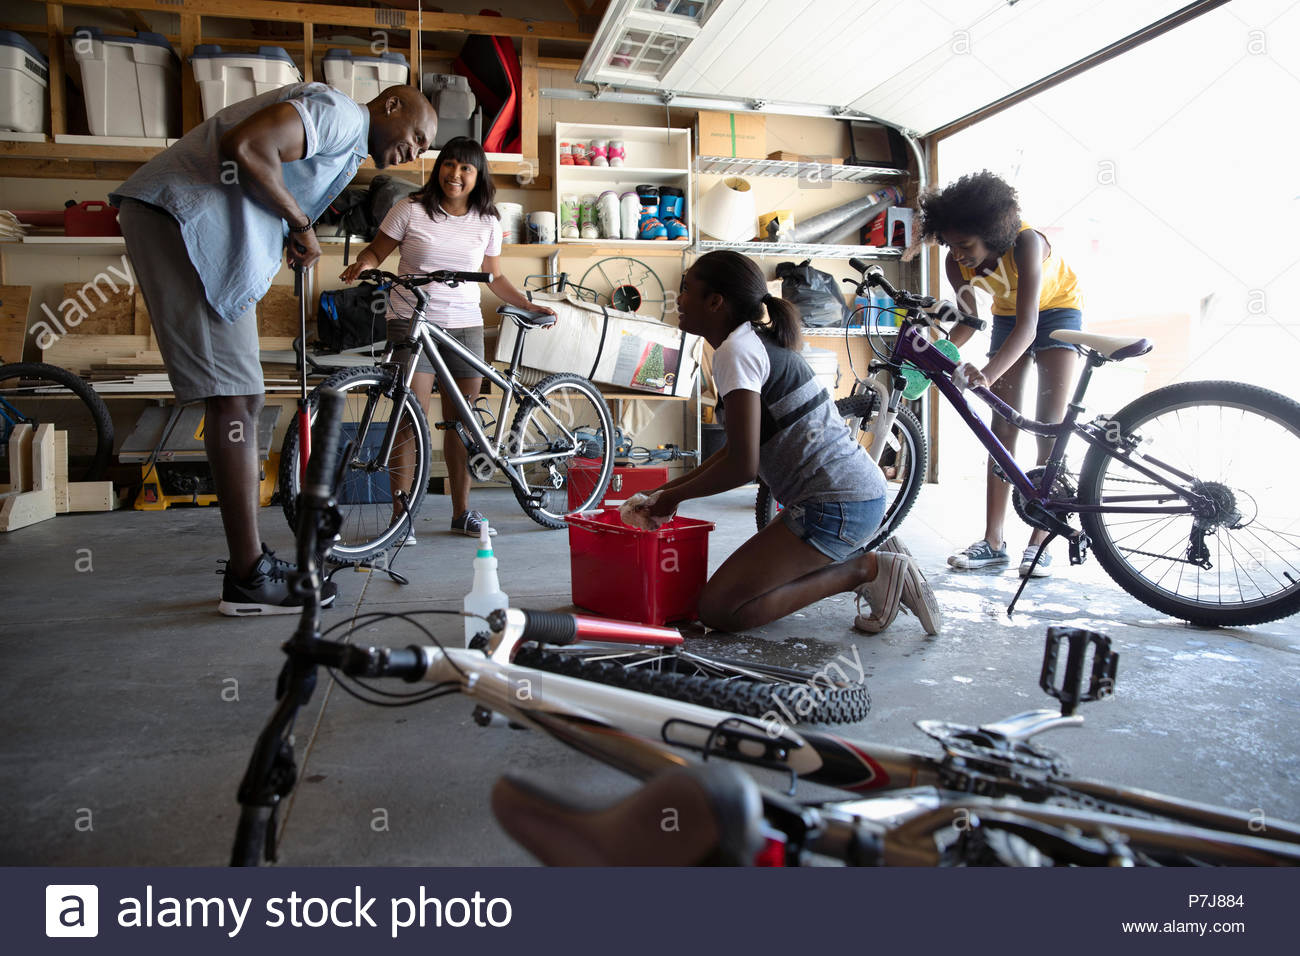 Family fixing bicycles in garage - Stock Image